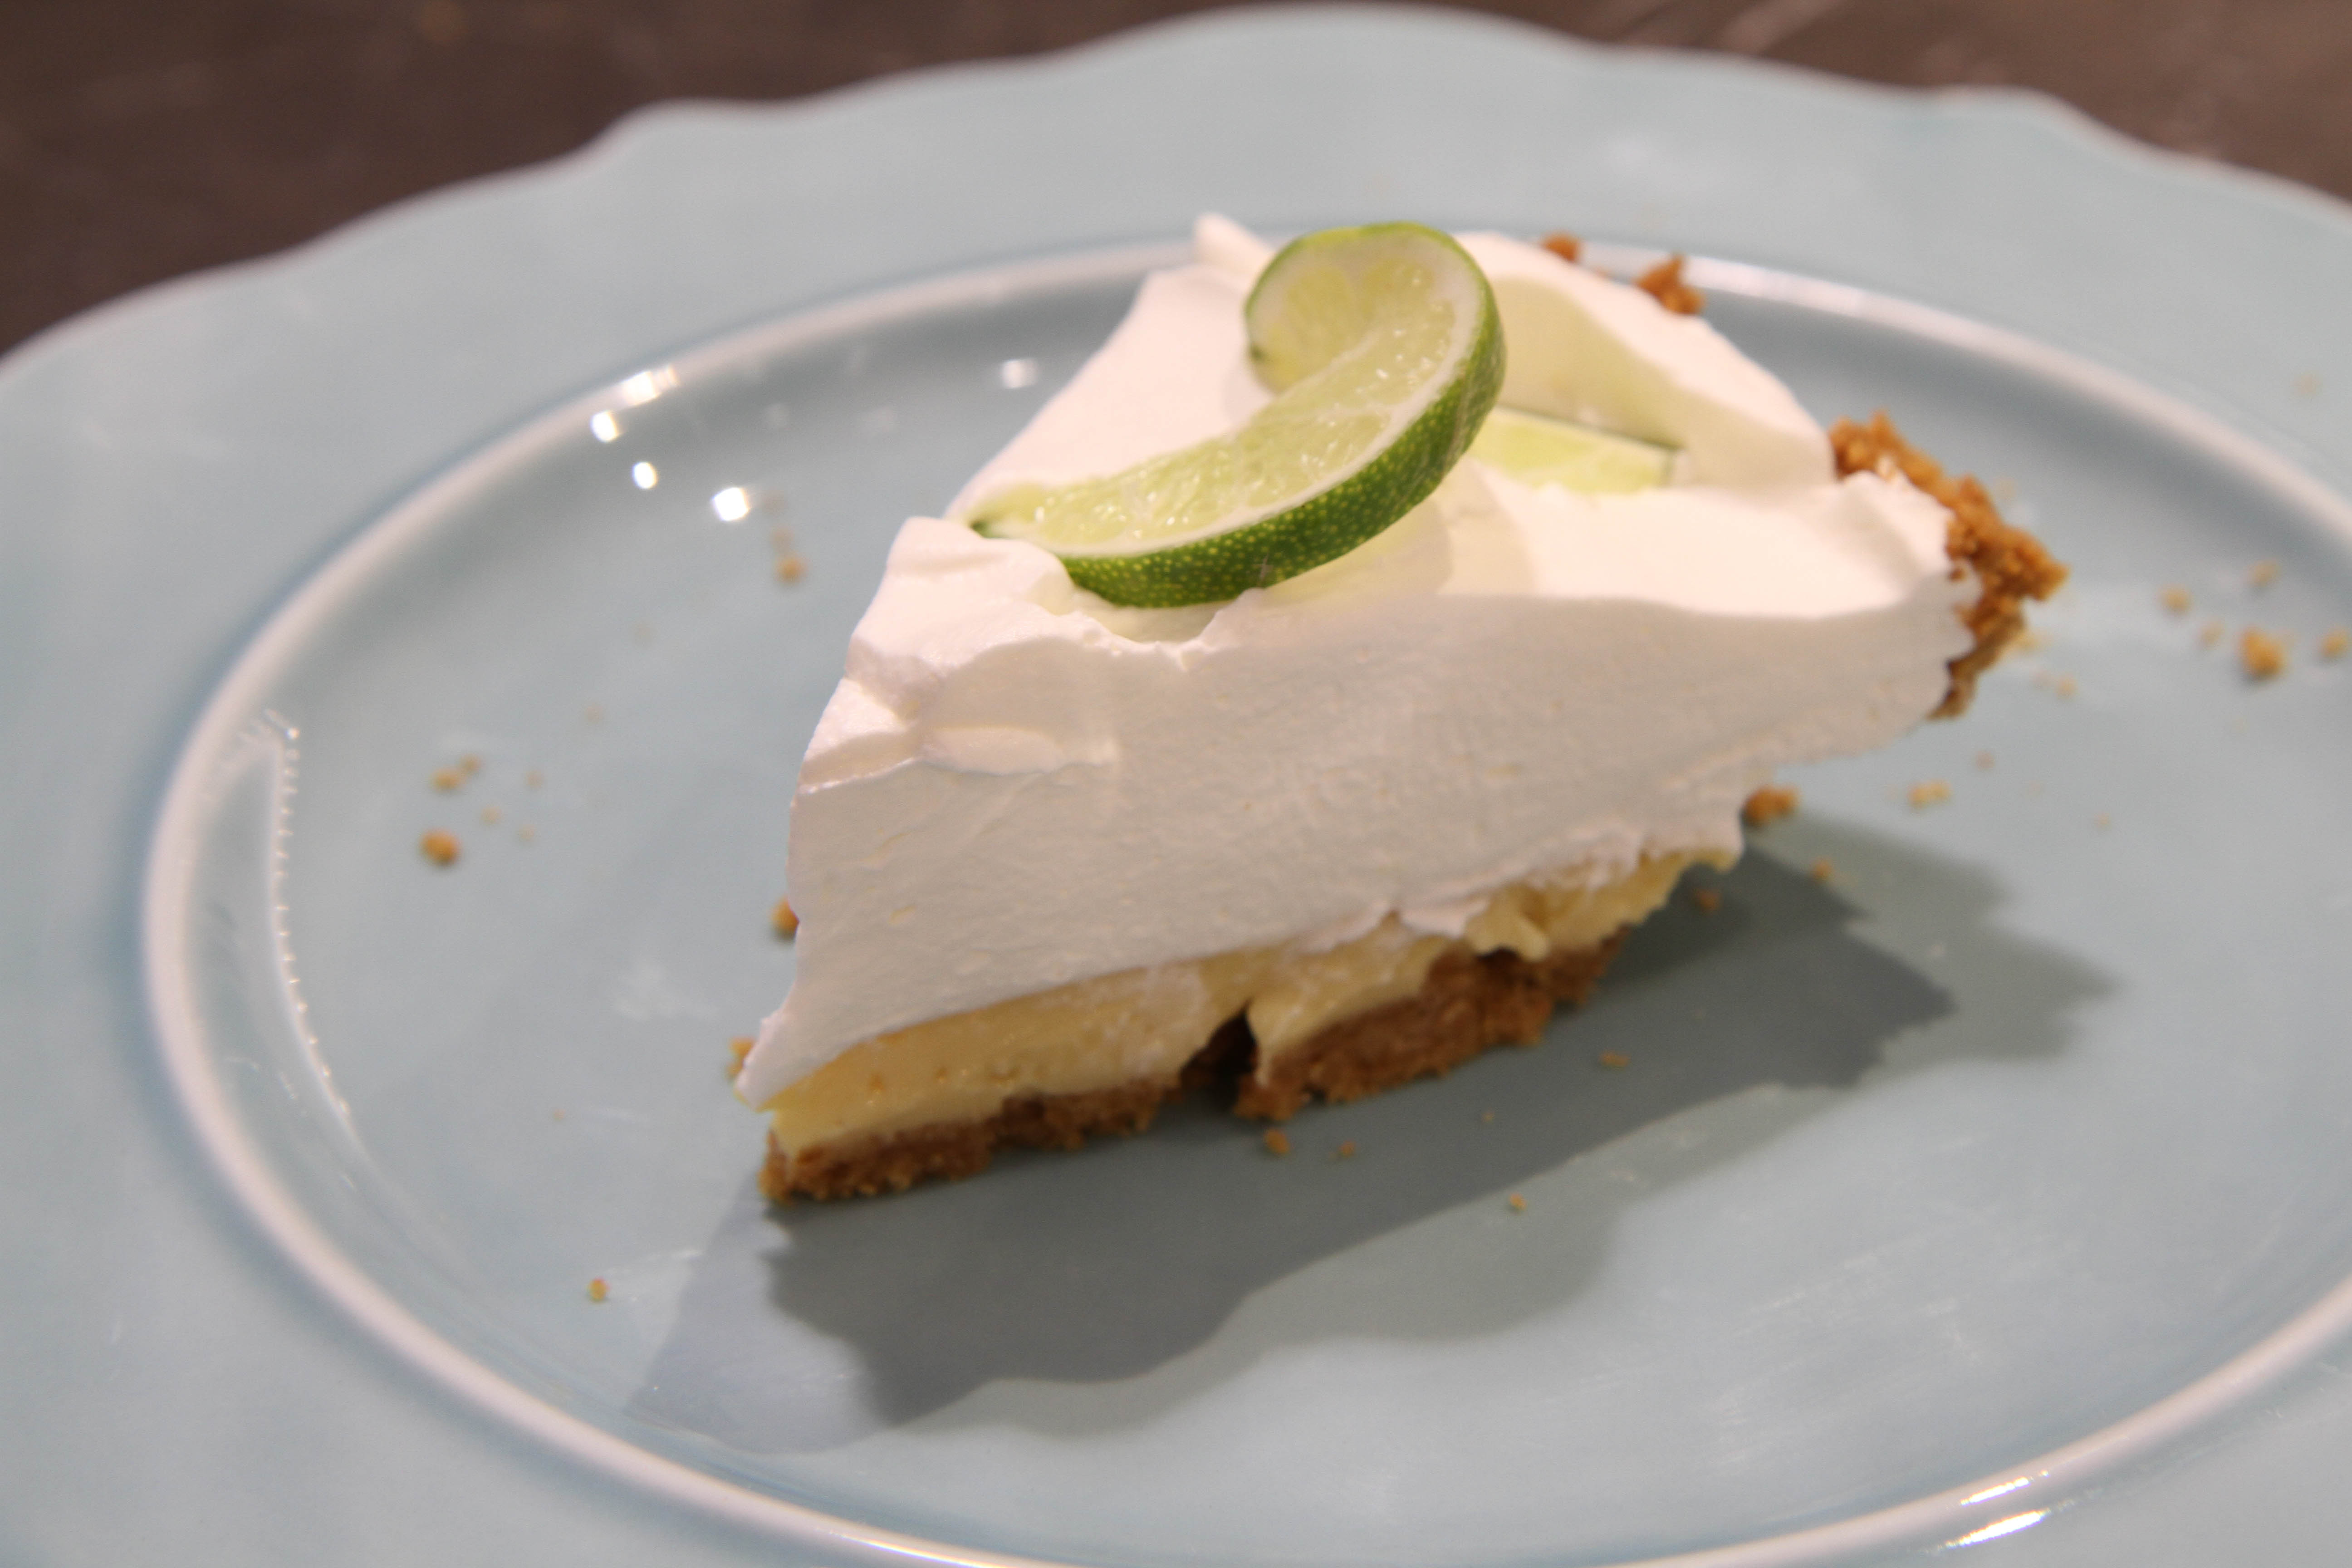 key_lime_pie_2016 (13 of 14) (1)